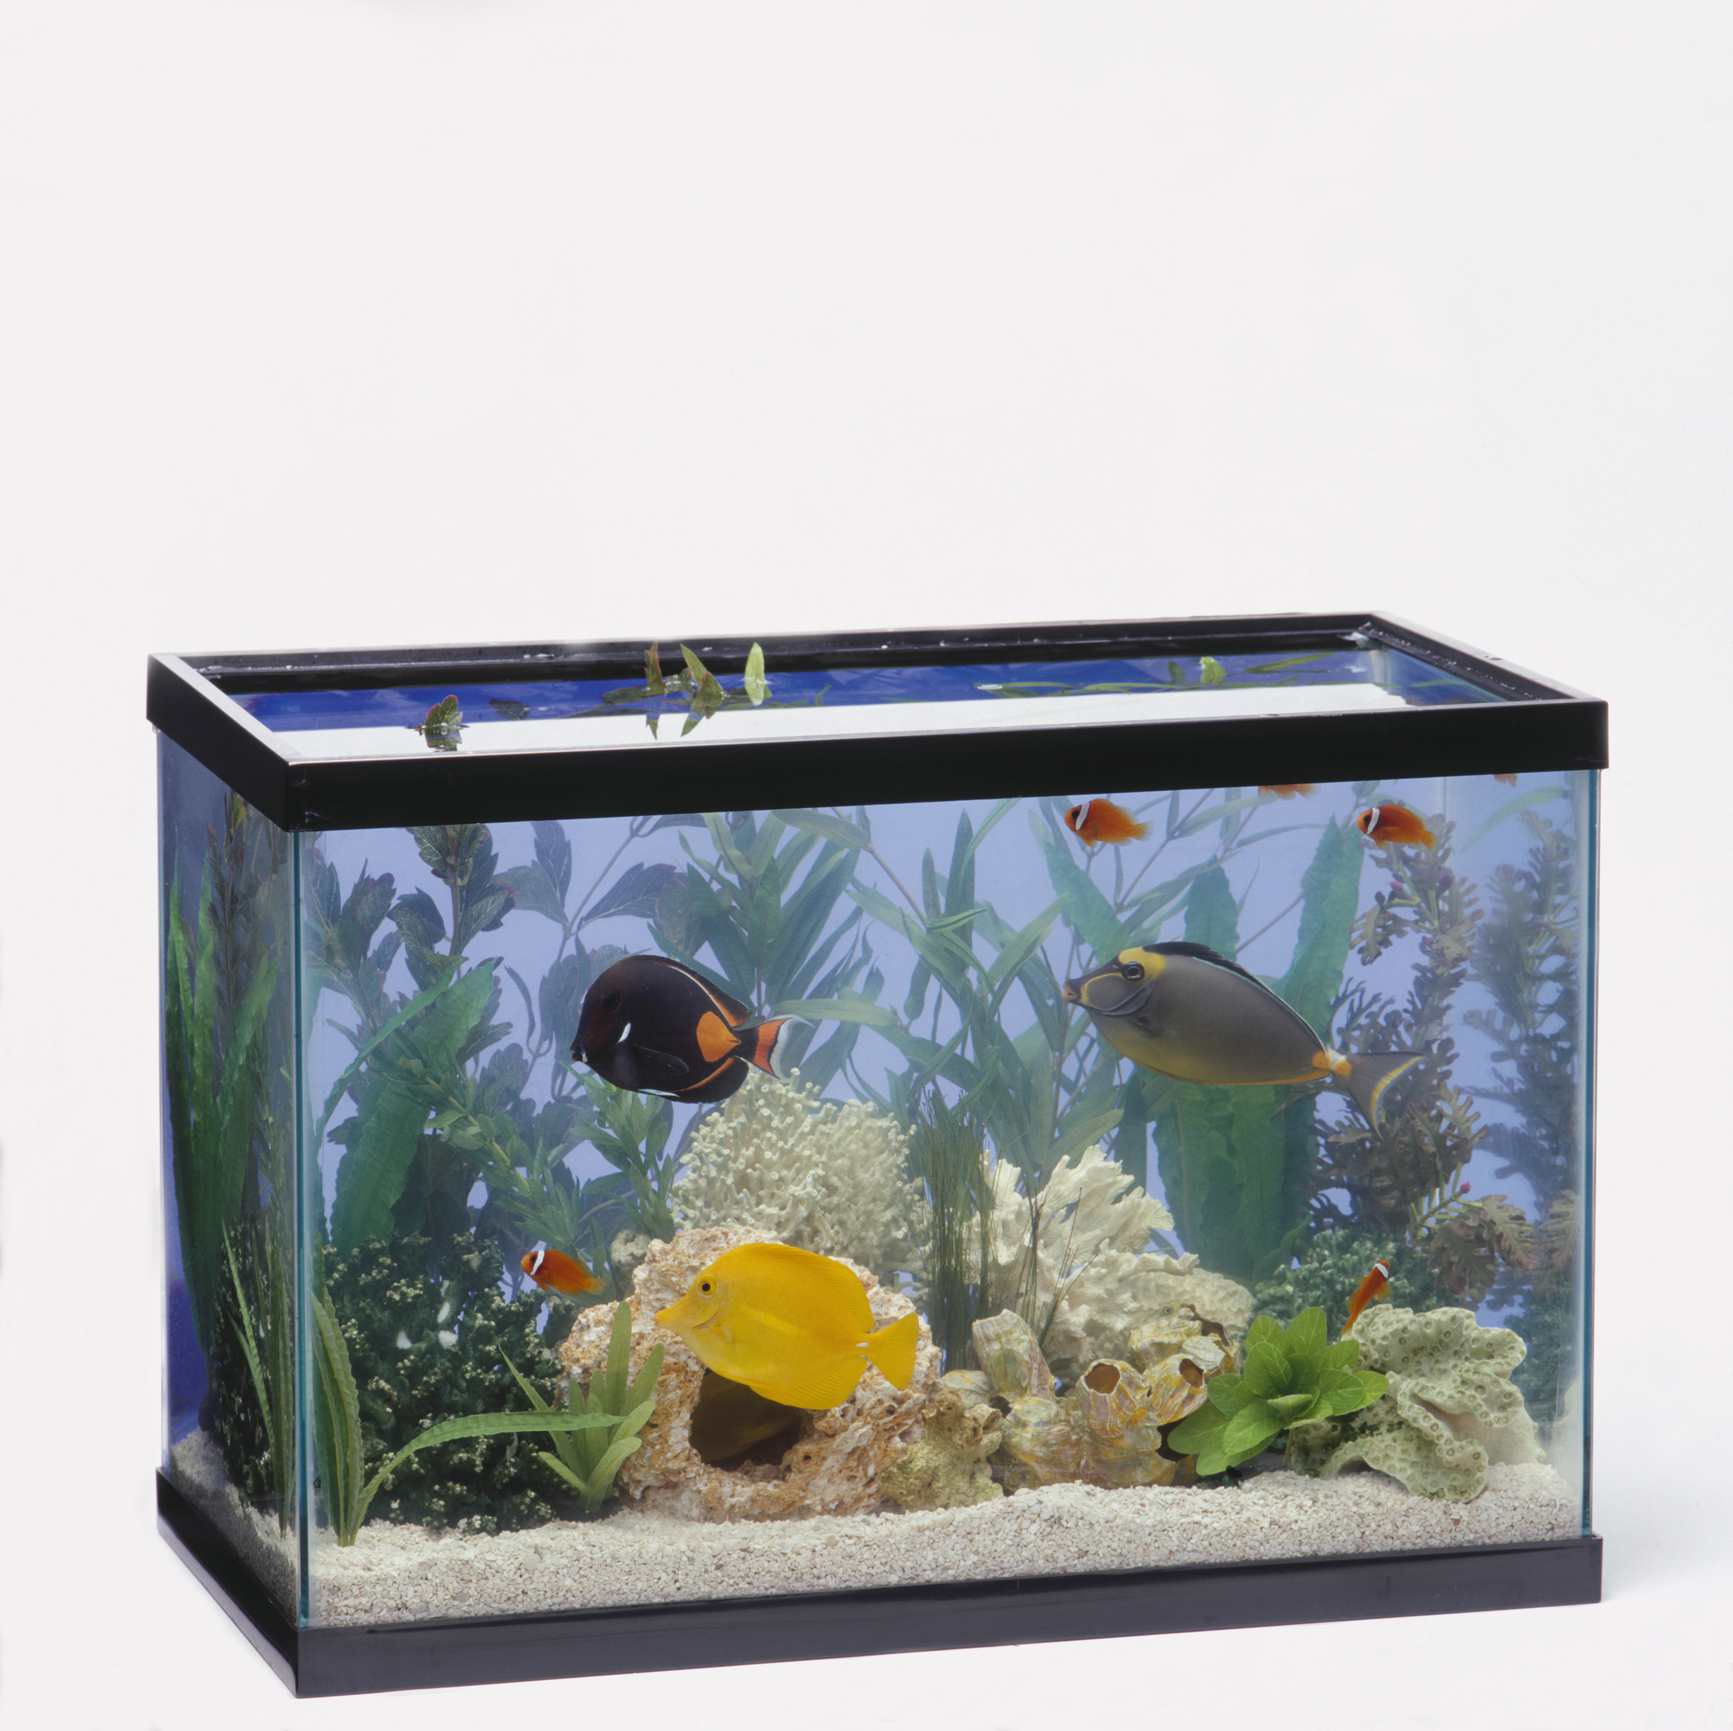 Fish & Aquariums Fish Tank And Stand Cool In Summer And Warm In Winter Pet Supplies